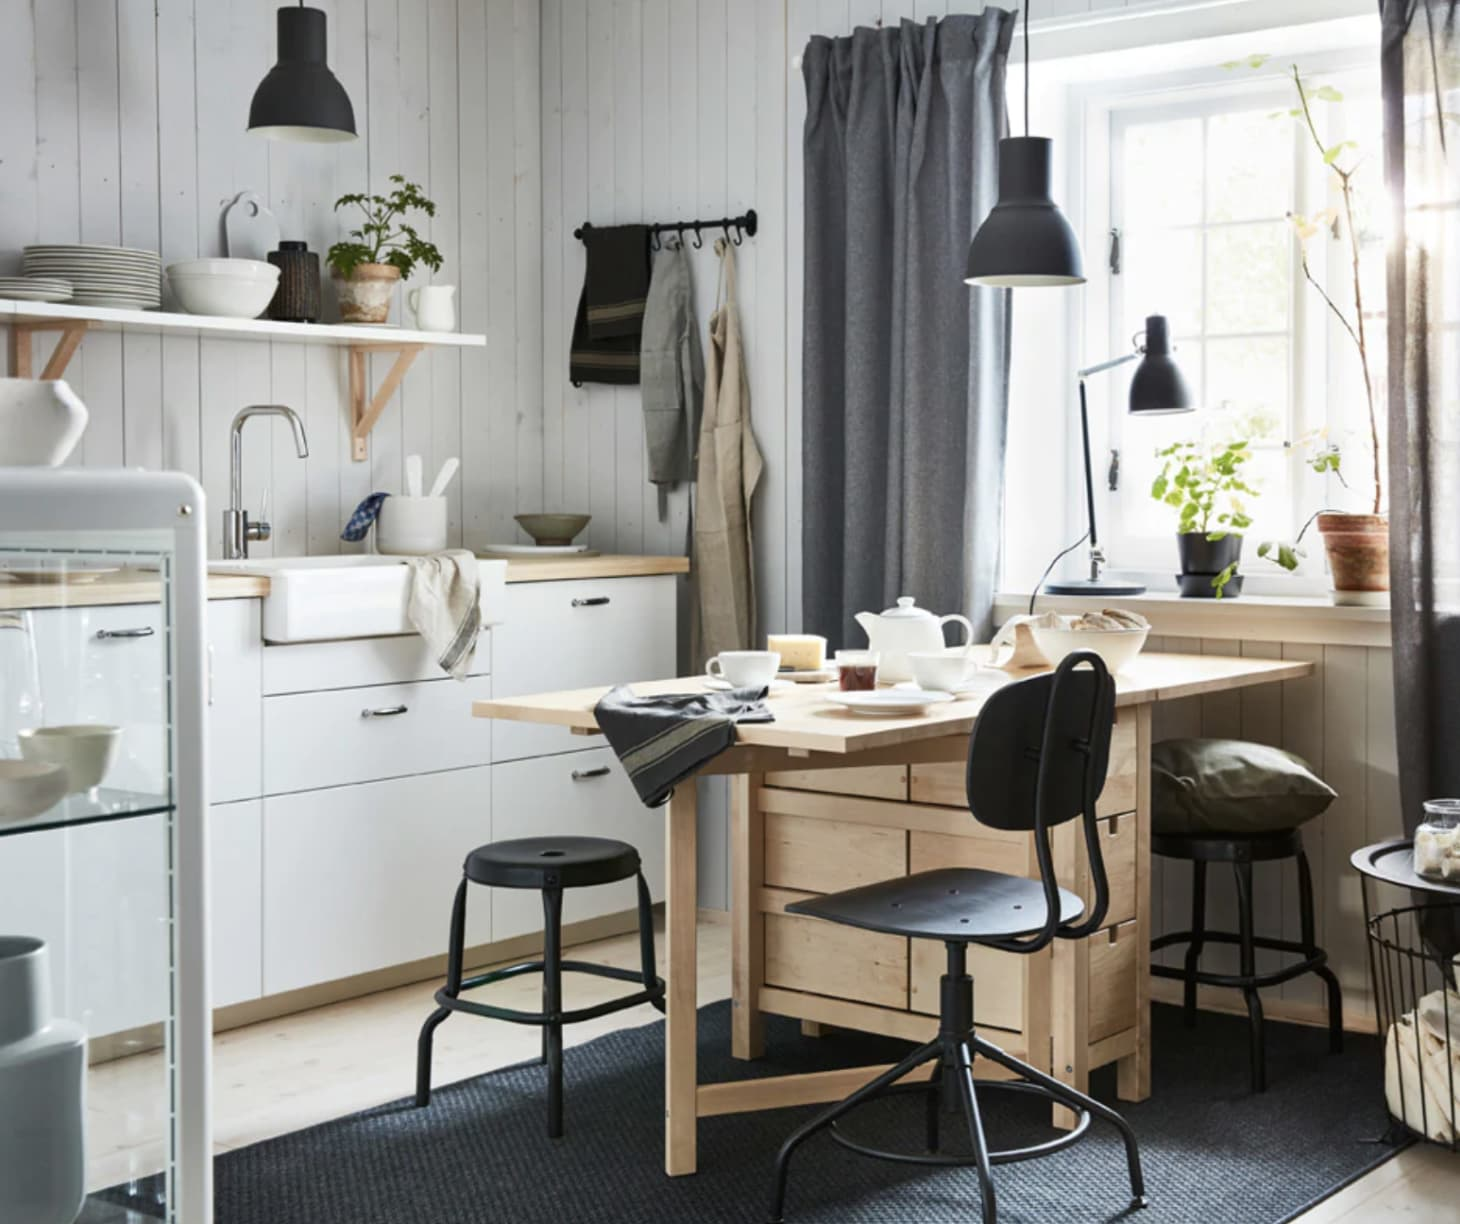 Ikea Dining Room Ideas: Clever Dining Room Design Ideas To Steal From IKEA